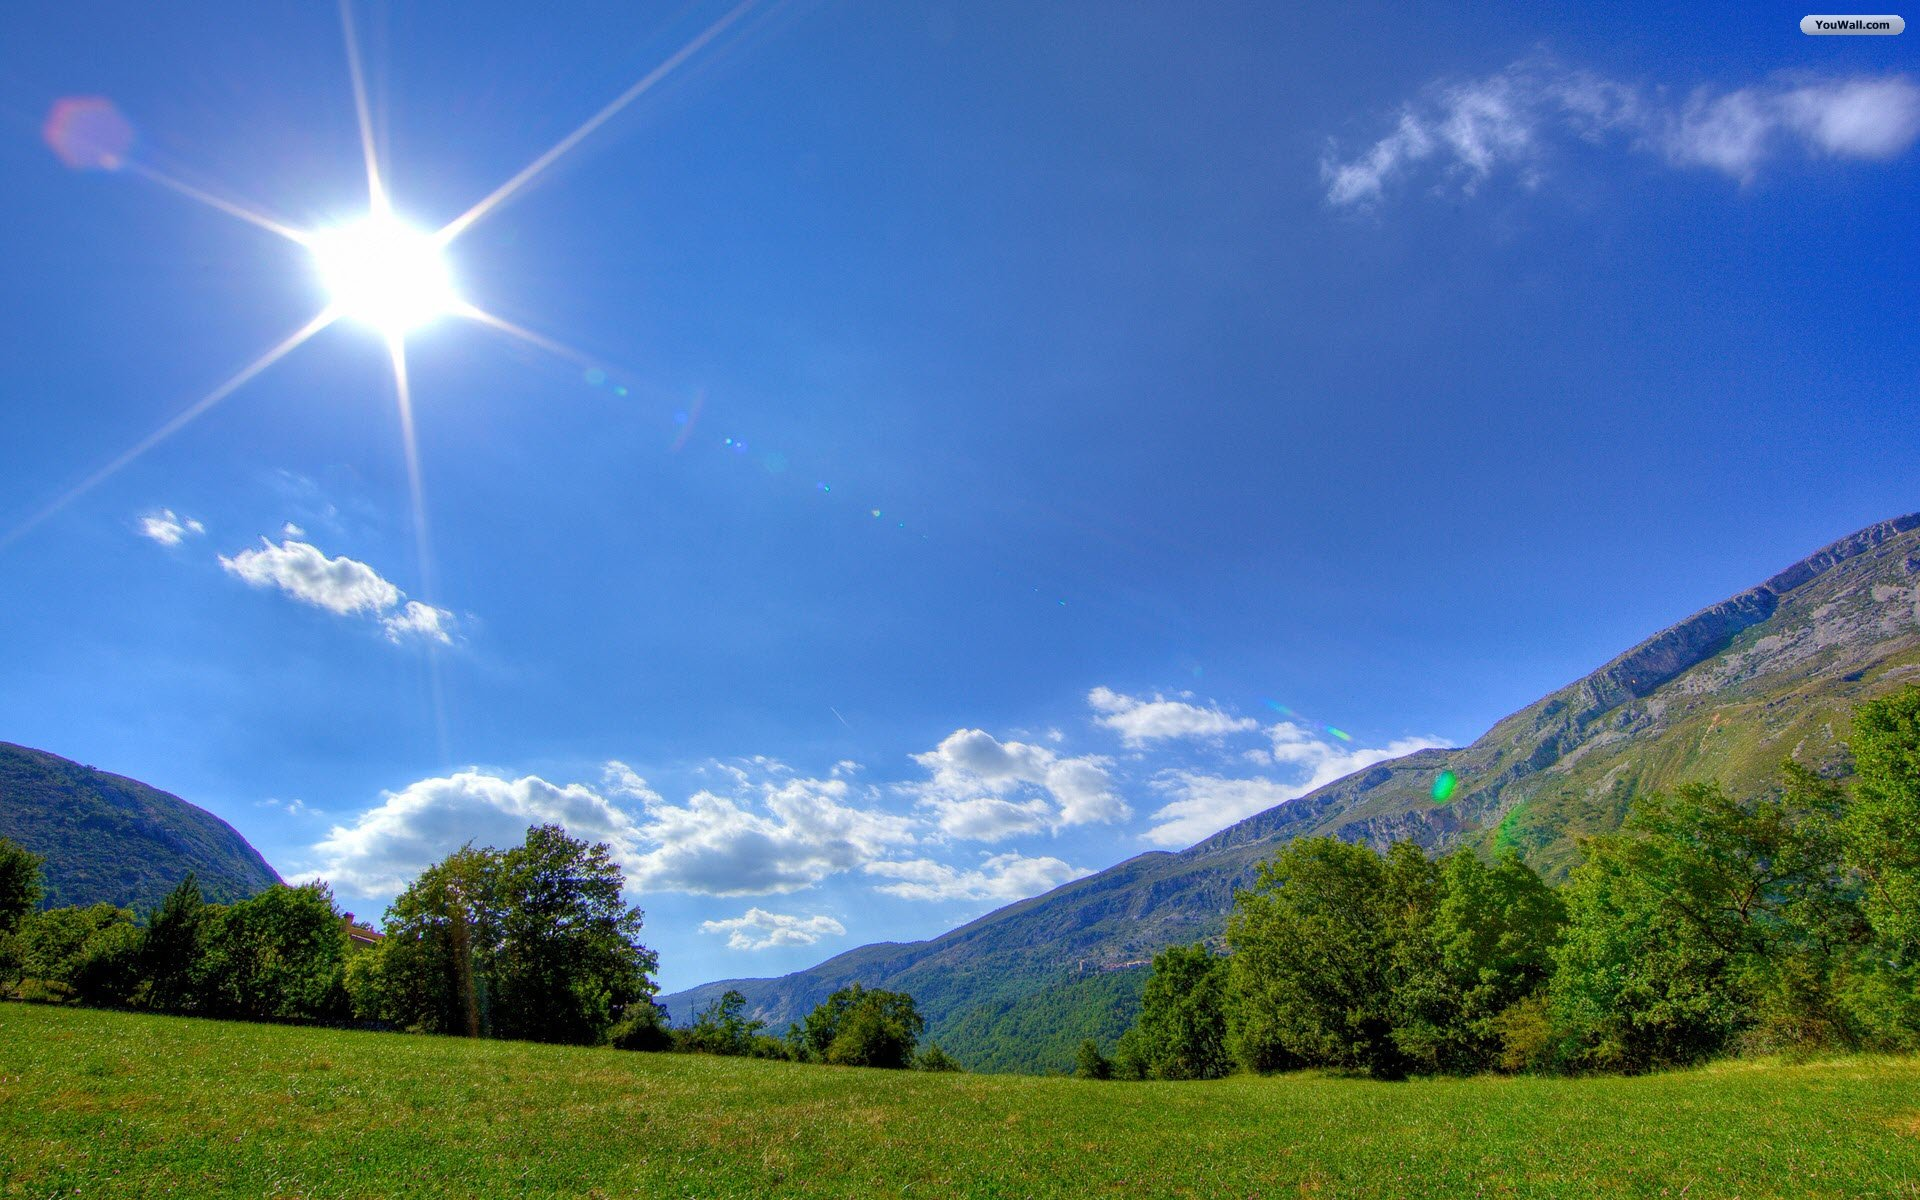 Wide HDQ Pretty Sunny Day Wallpapers 38 BSCB 1920x1200